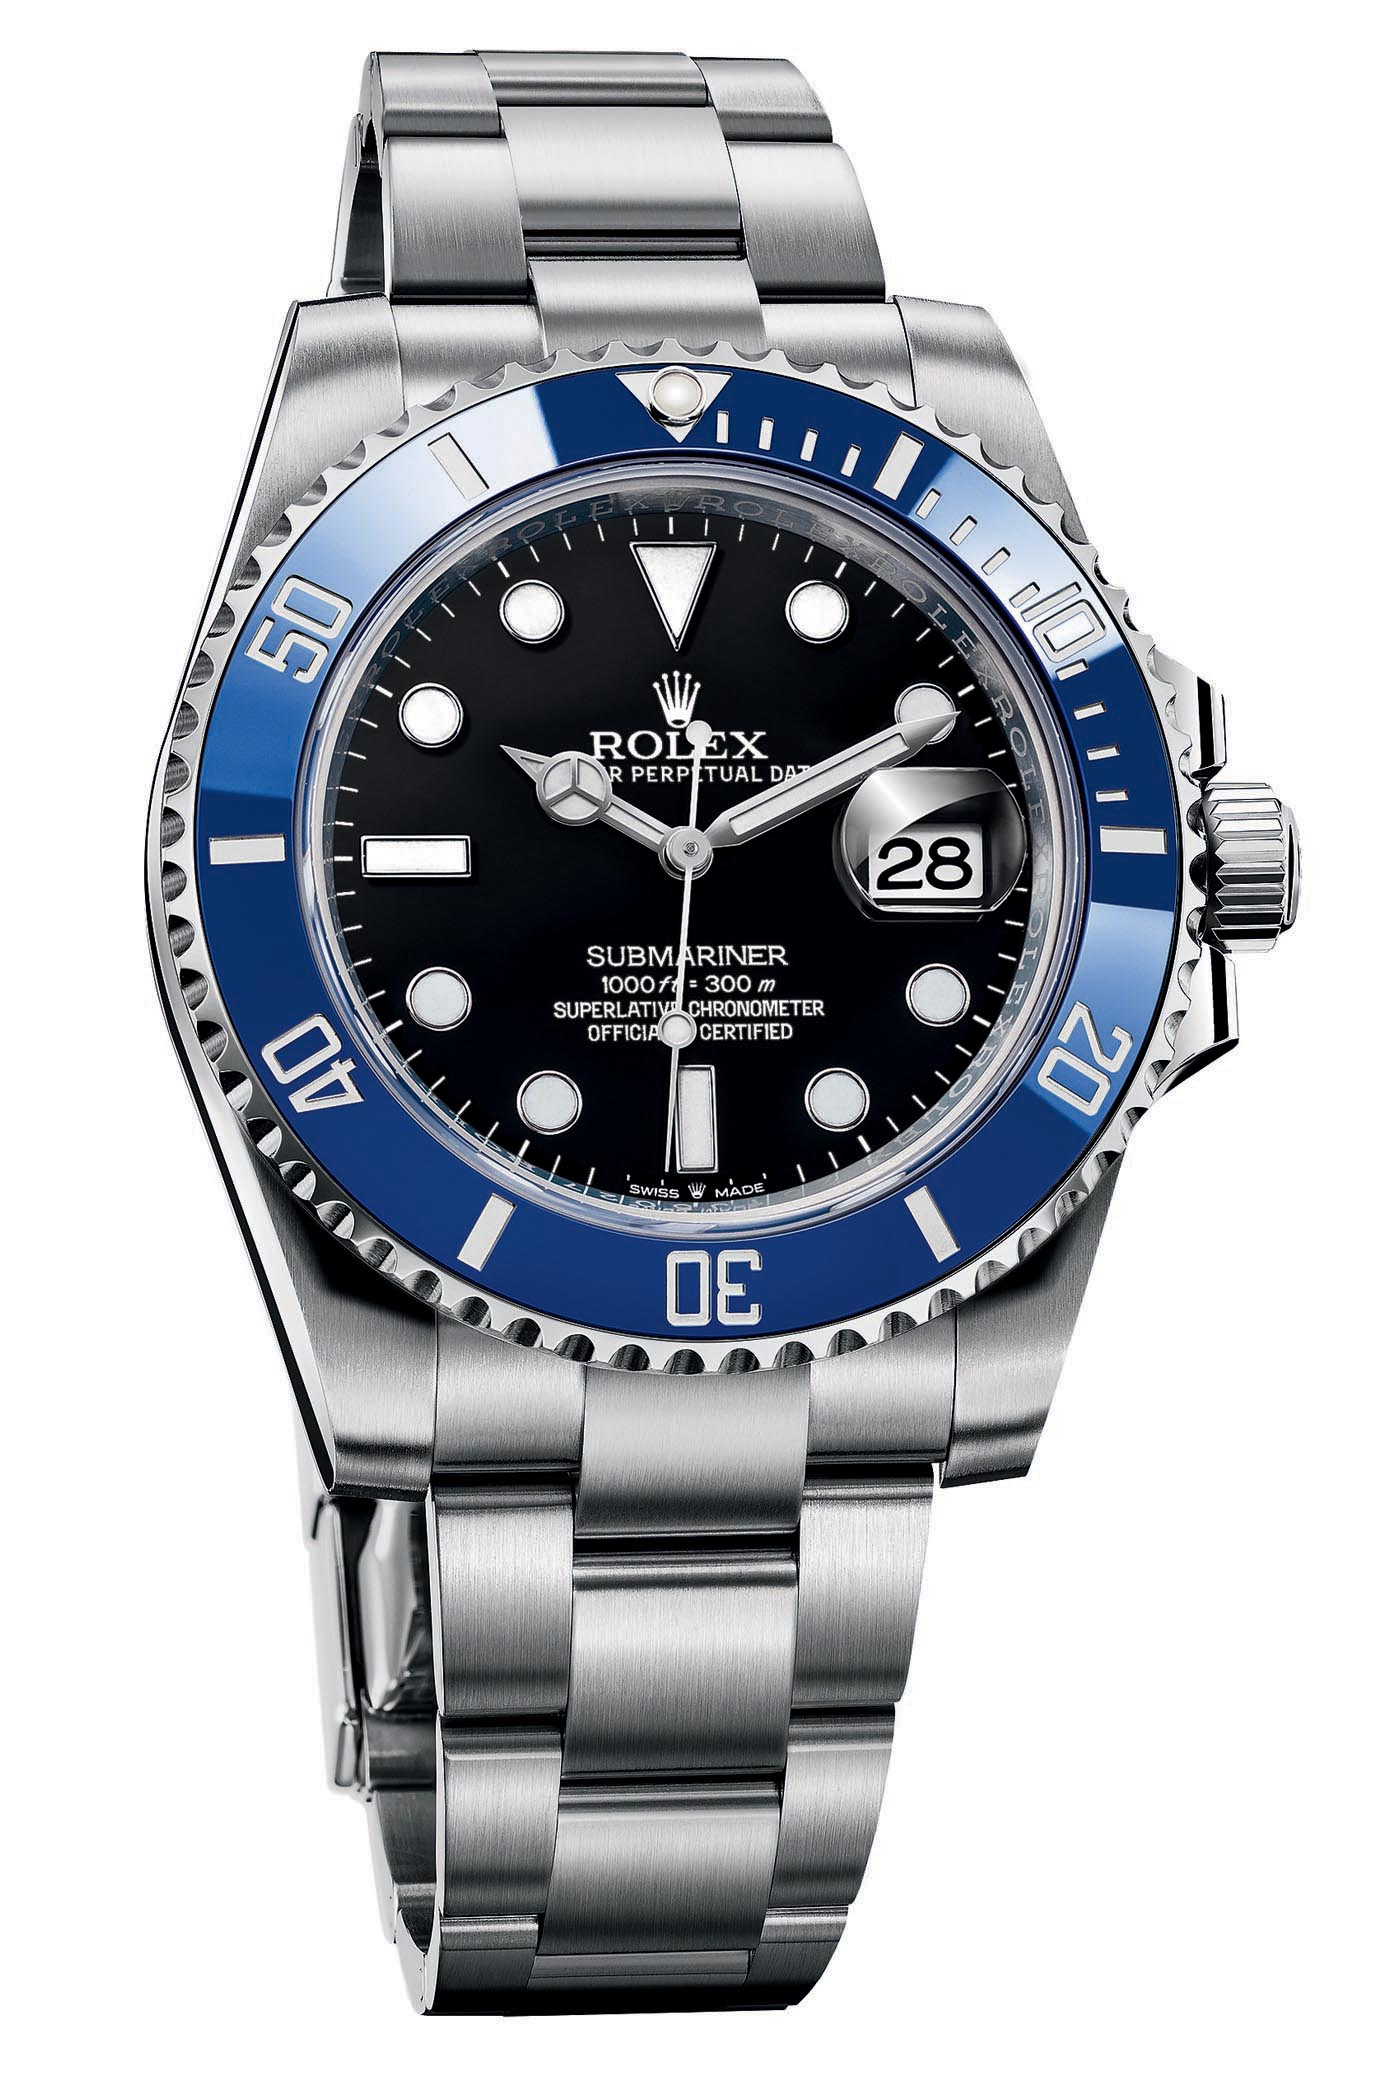 Rolex Submariner 2019 Calibre 3235 ref 126610LB - Rolex Baselworld 2019 - Rolex 2019 Predictions